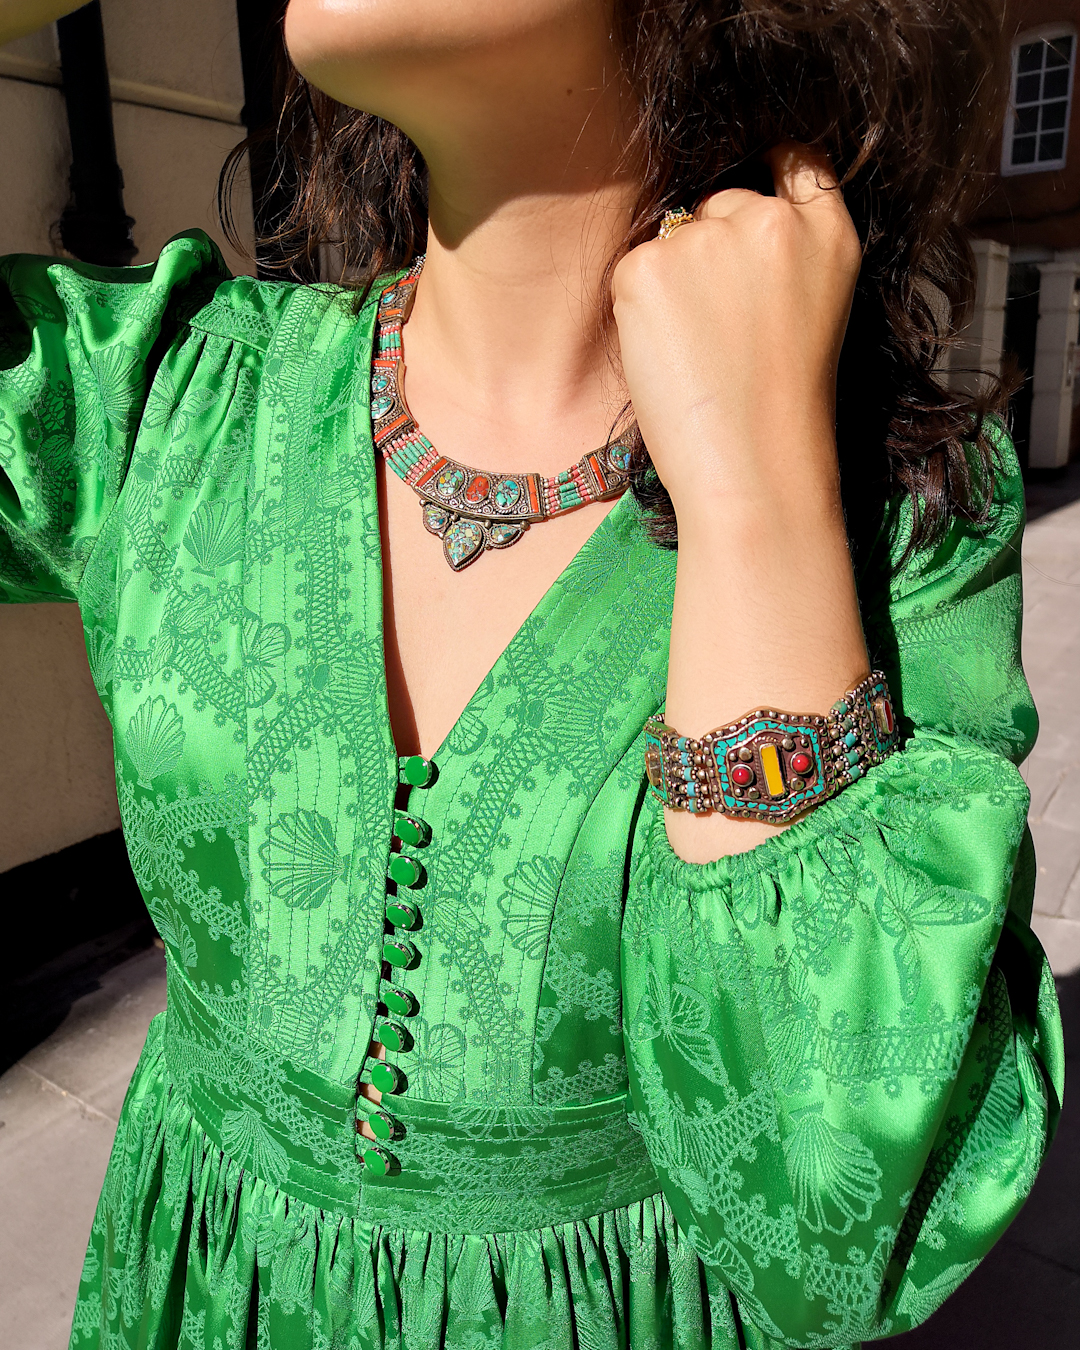 Katie wears a green dress with long poofy sleeves, a nipped in waist and short flouncy skirt. She's carrying a red shoulder bag and wearing pink slip on flats, and has accessorised with Berber style jewellery.